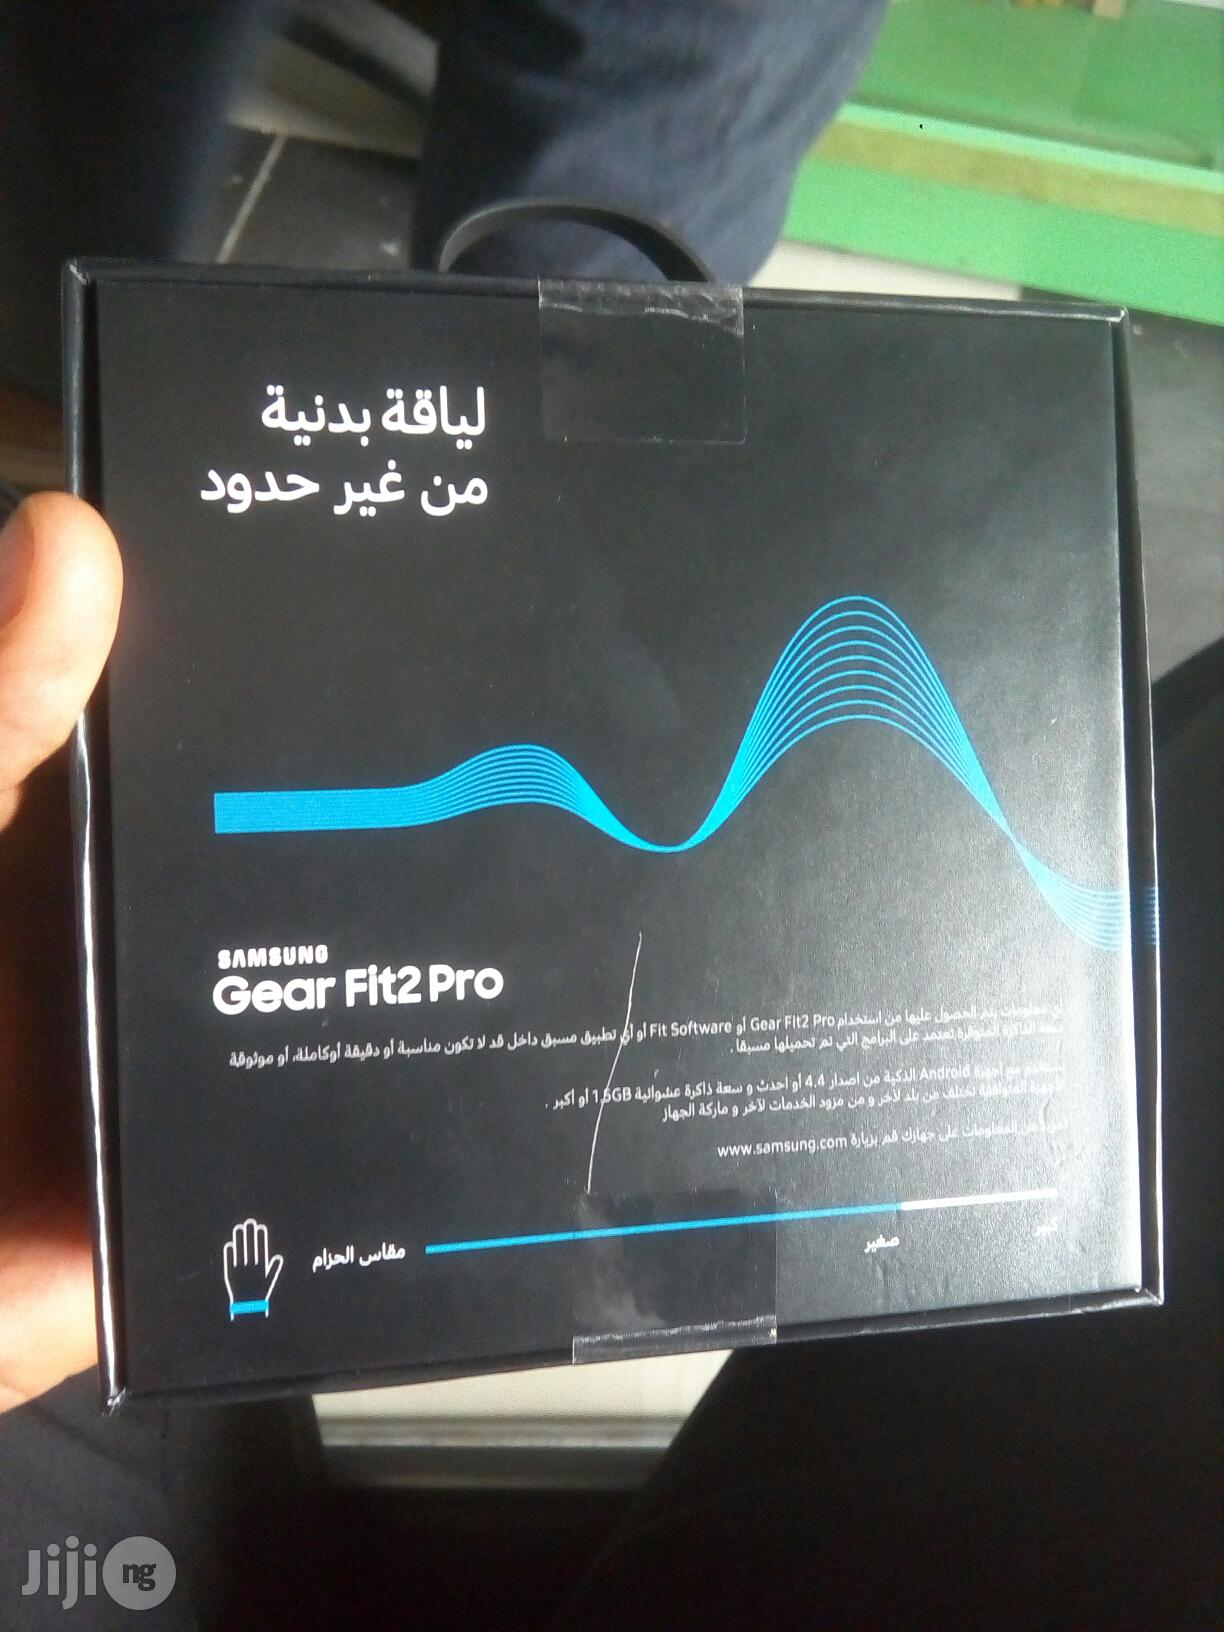 Samsung Gear Fit 2 Pro | Smart Watches & Trackers for sale in Ikeja, Lagos State, Nigeria